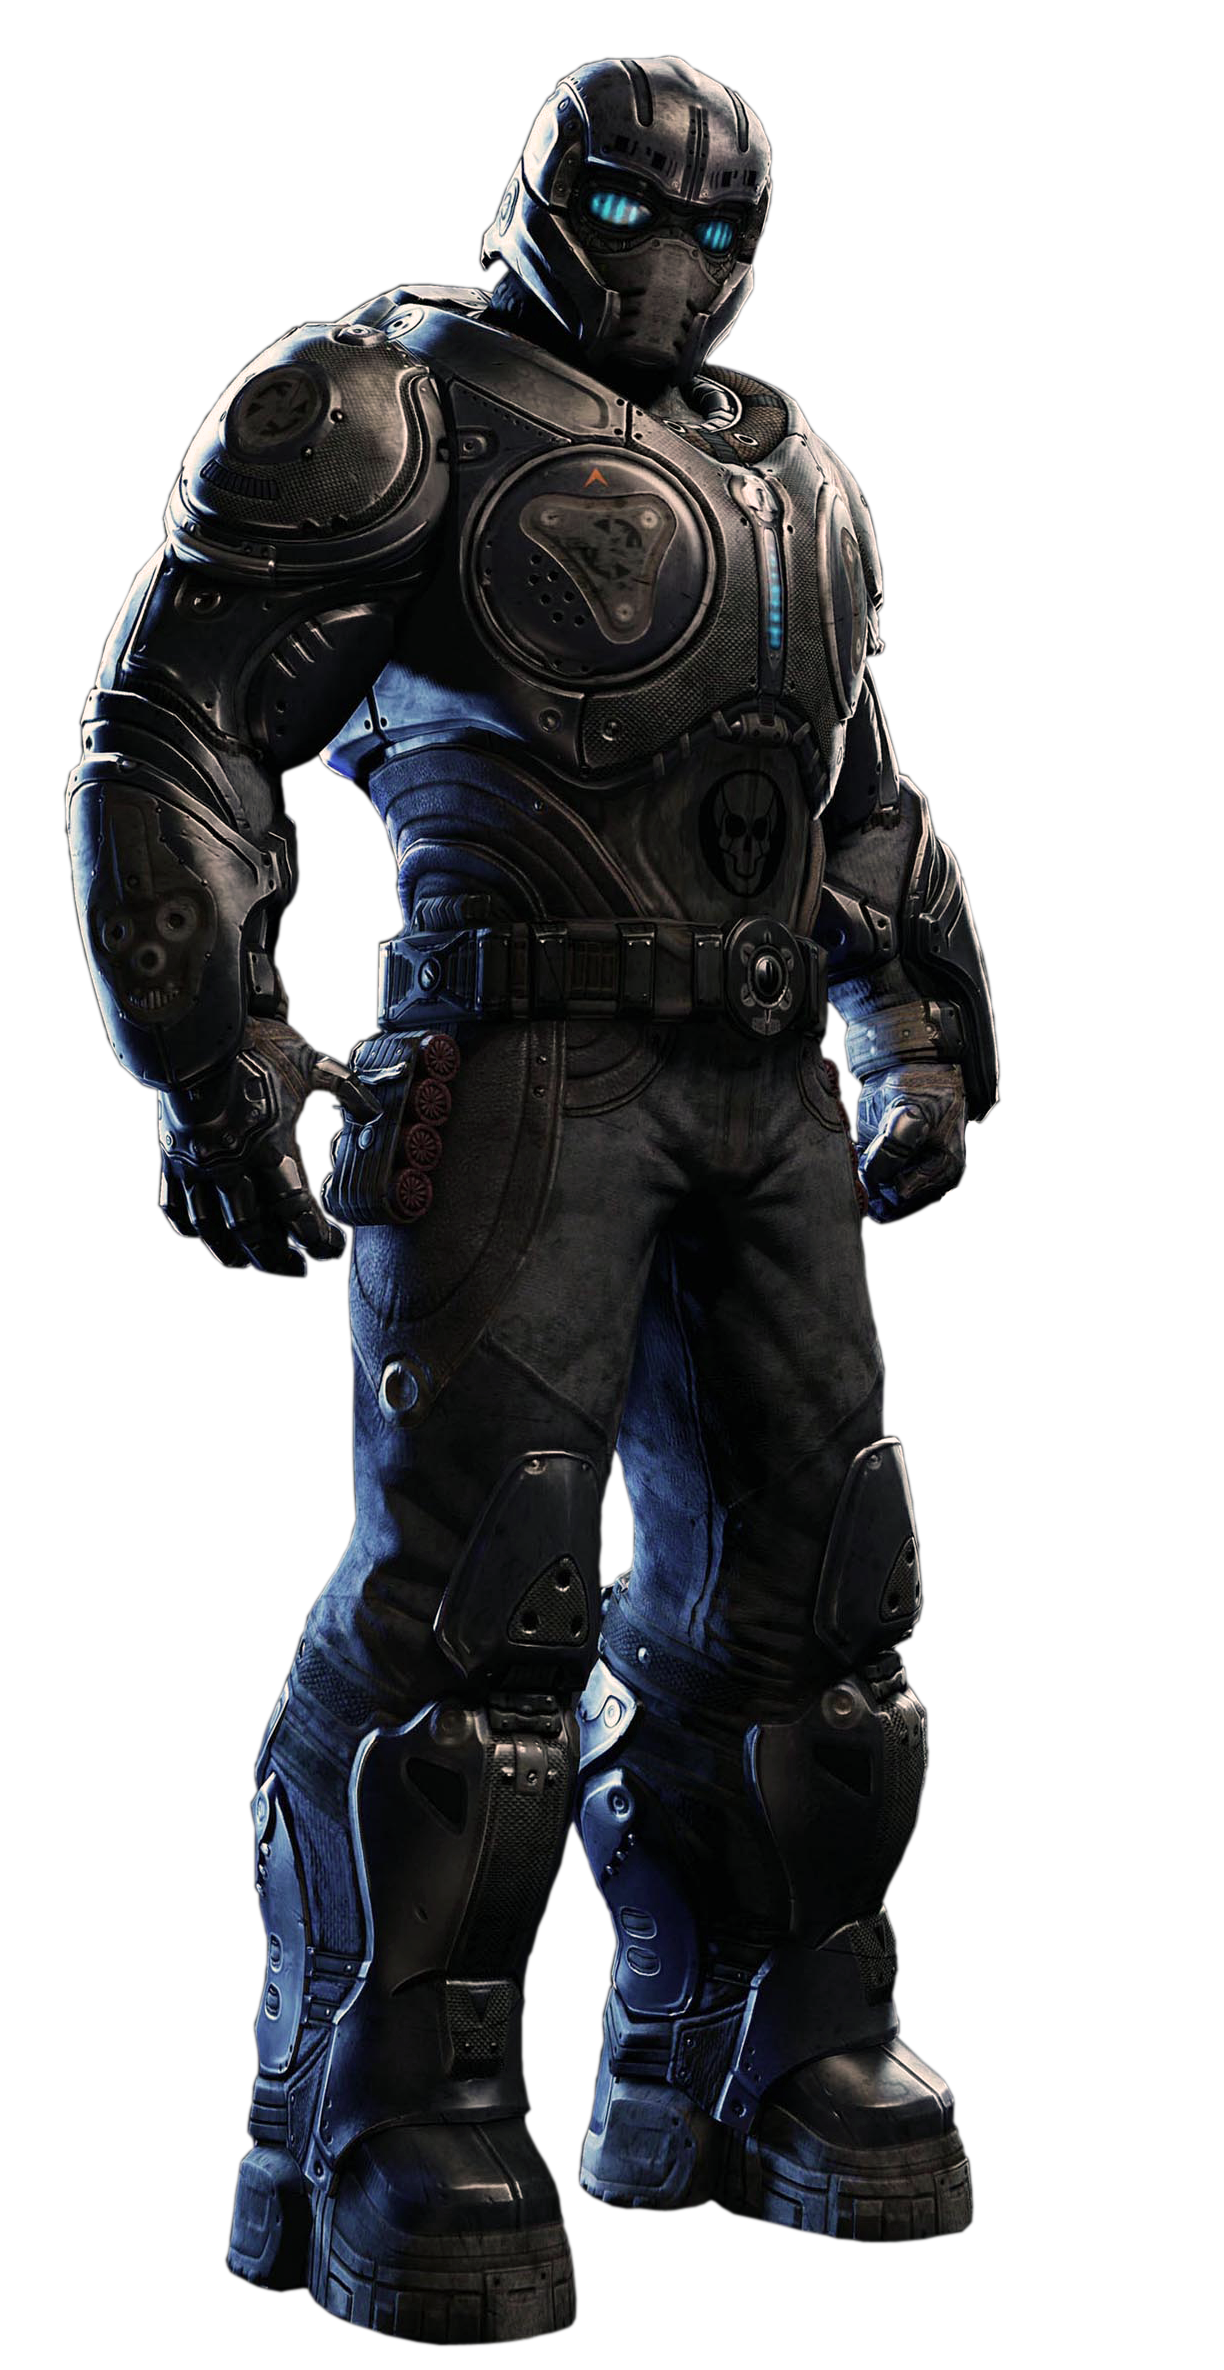 Gears of war 4 wallpaper clipart images gallery for free download.